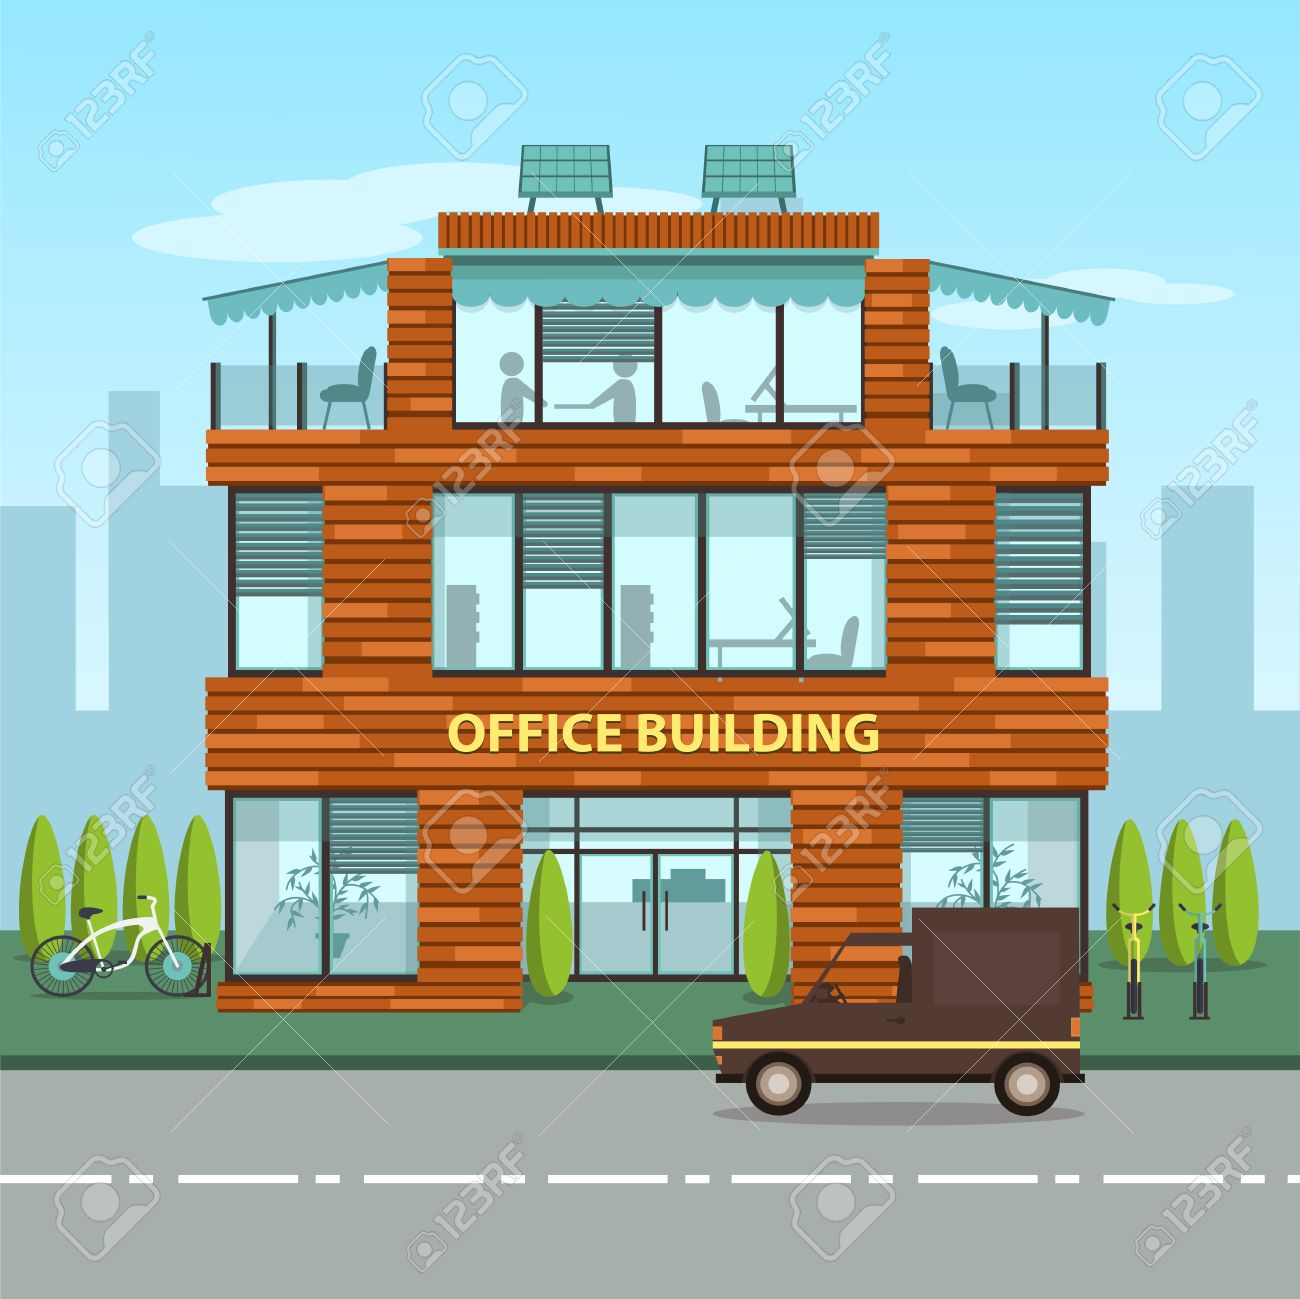 exterior office. Modern Office Building In Cartoon Flat Style. Interior And Exterior, Inside Outside Exterior